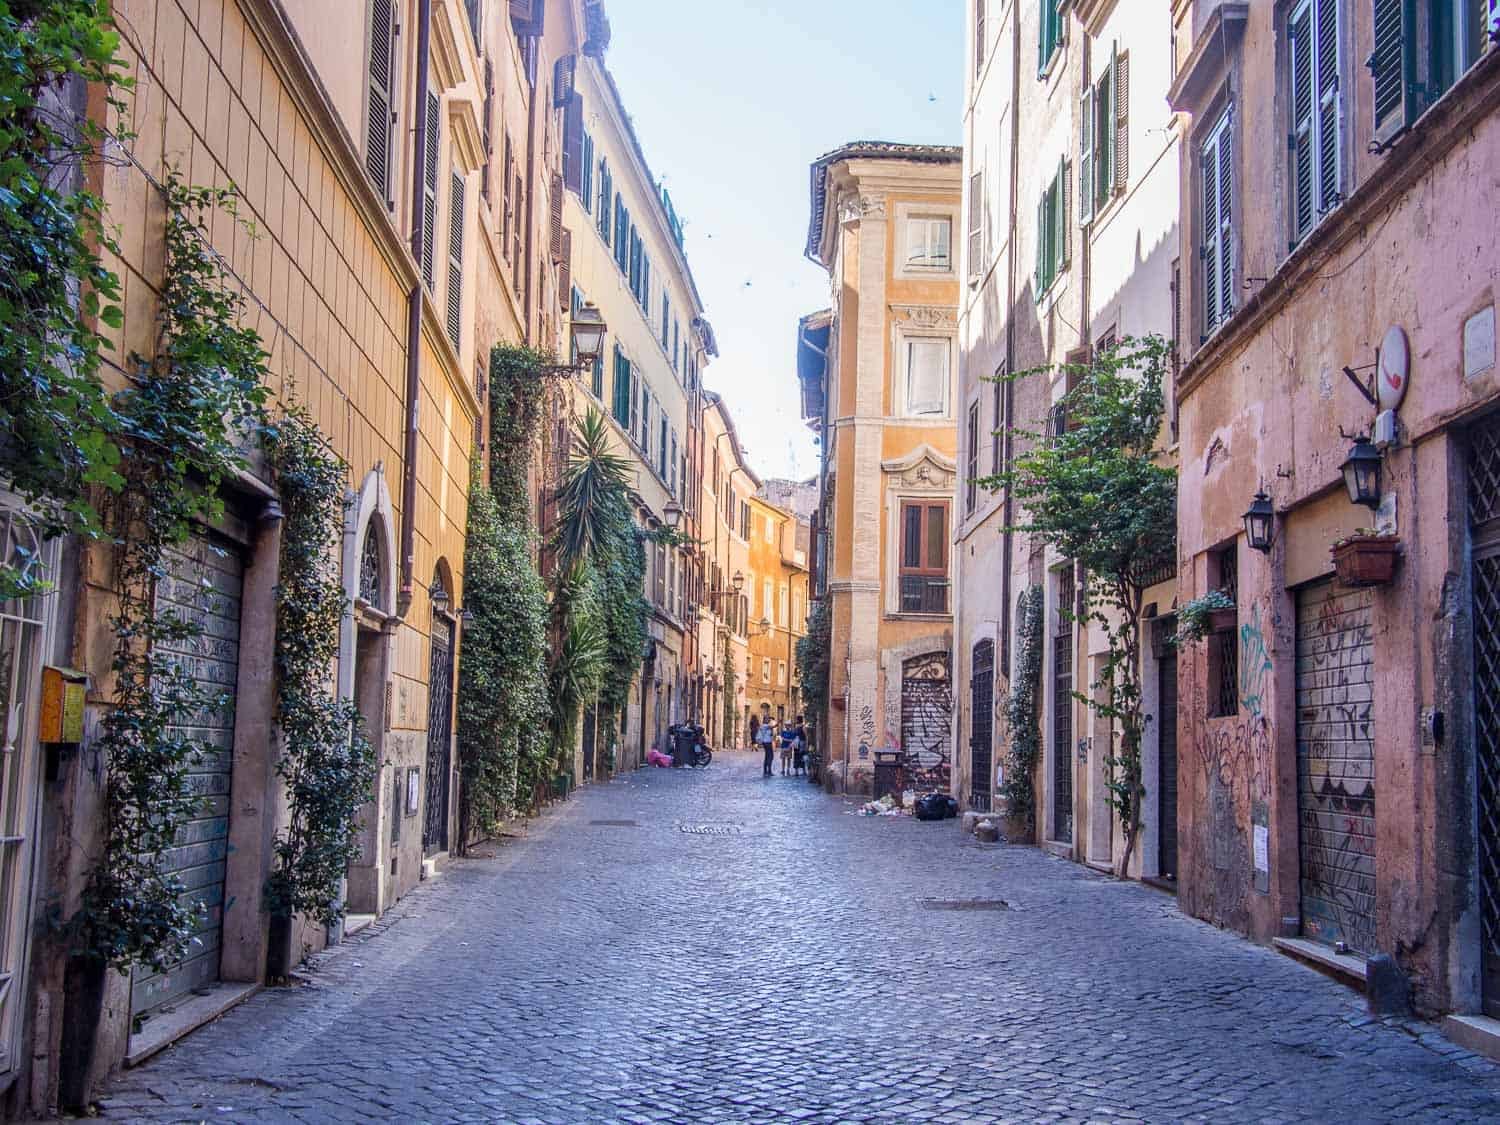 A street in Trastevere, Rome one of the best neighbourhoods to stay in the city